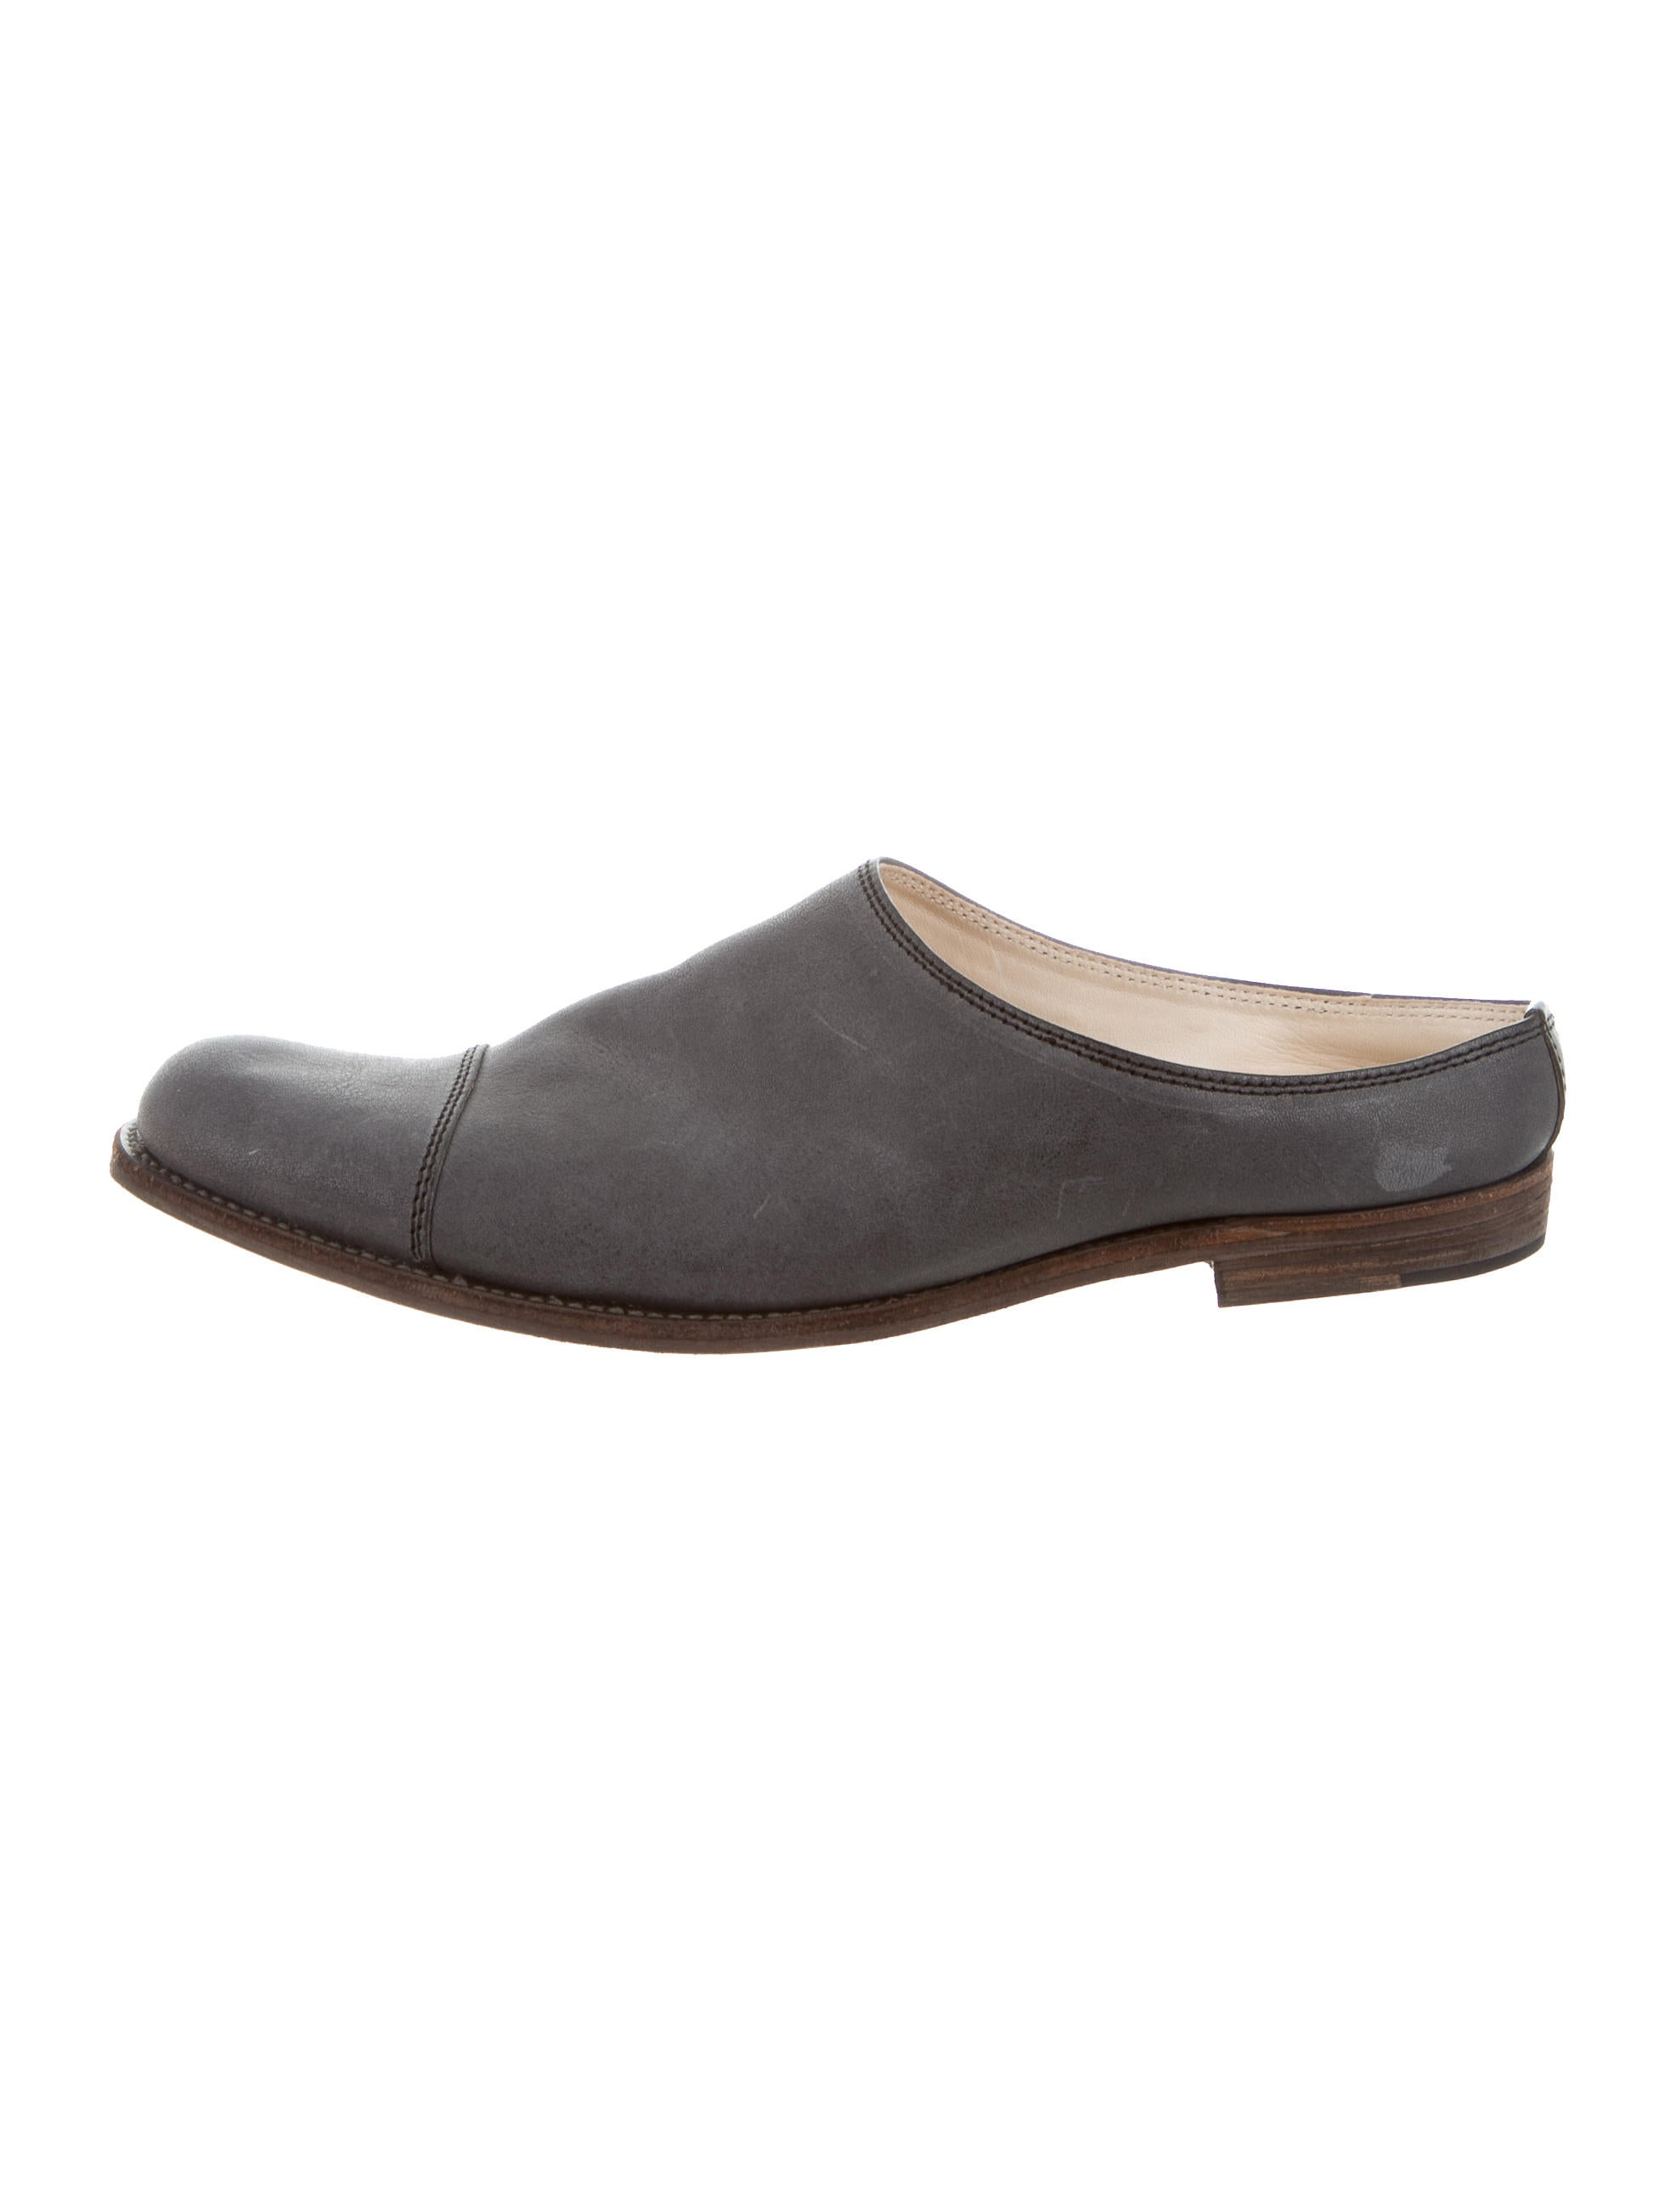 free shipping outlet locations Arts & Science Leather Round-Toe Mules w/ Tags outlet store buy cheap low price fee shipping discount limited edition discount classic szBRdsr1VI